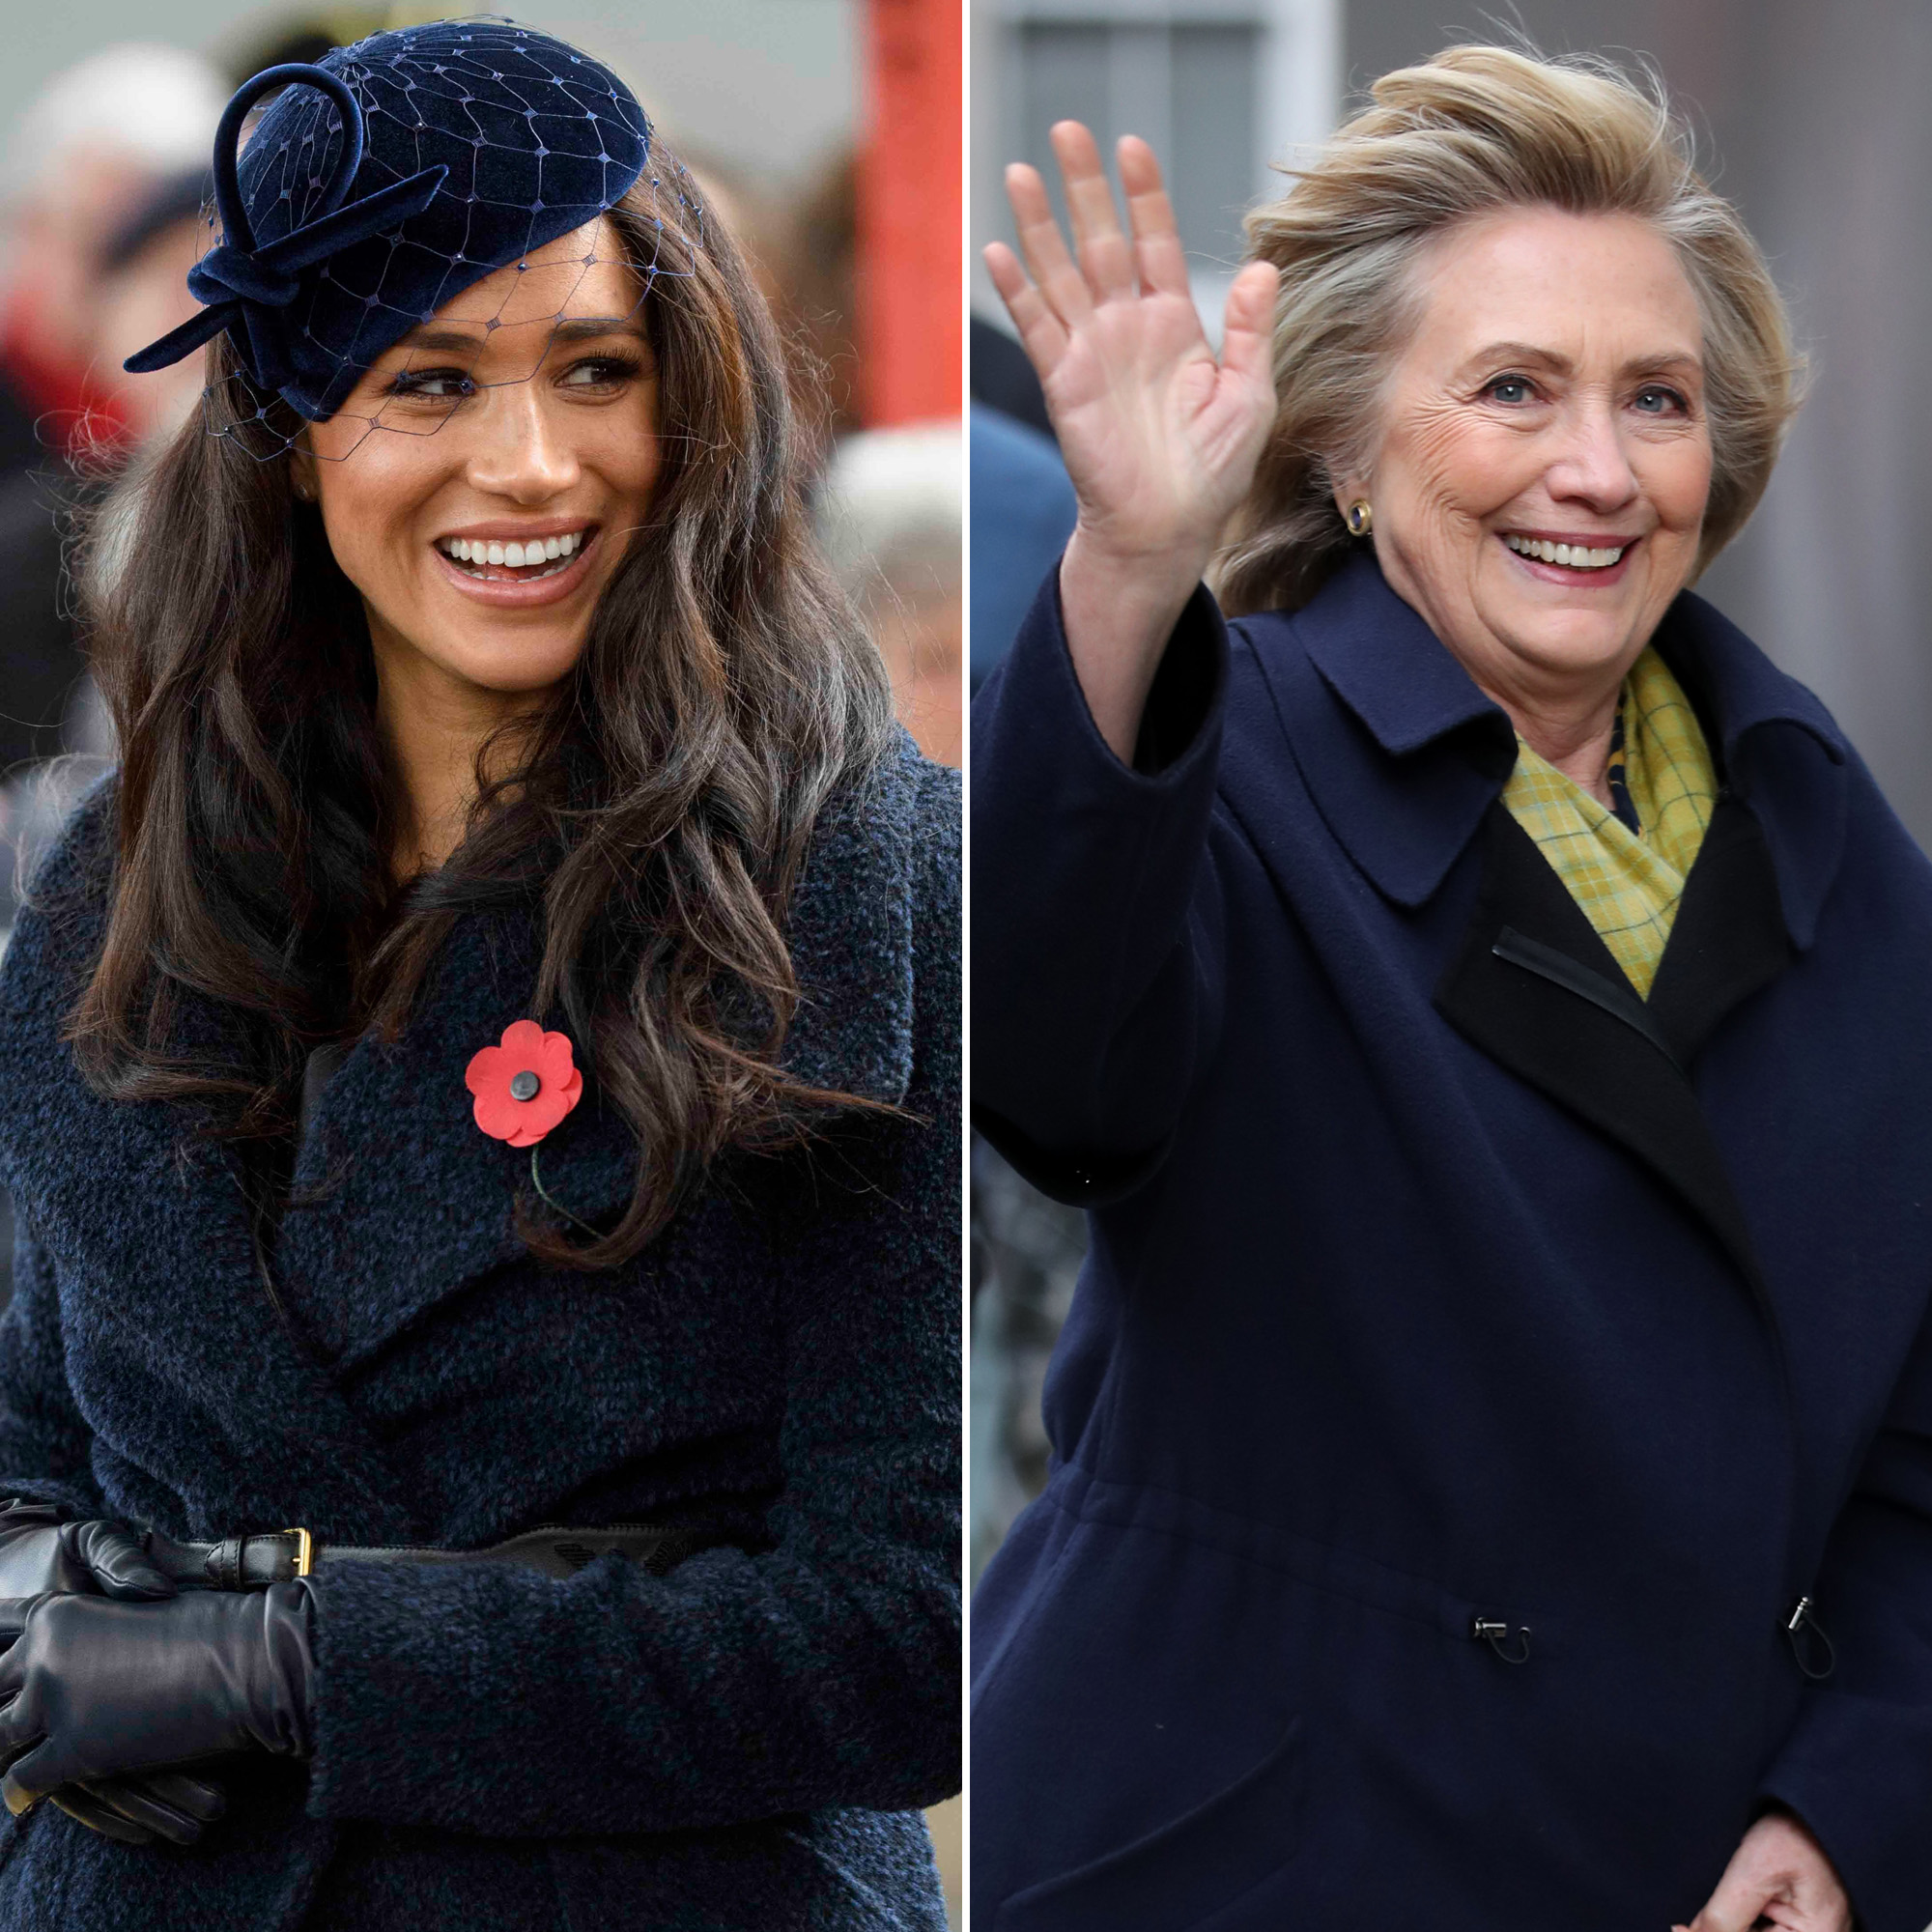 Duchess Meghan Had a Very 'Sweet' and 'Warm Meeting' With Friend Hillary Clinton at Frogmore Cottage